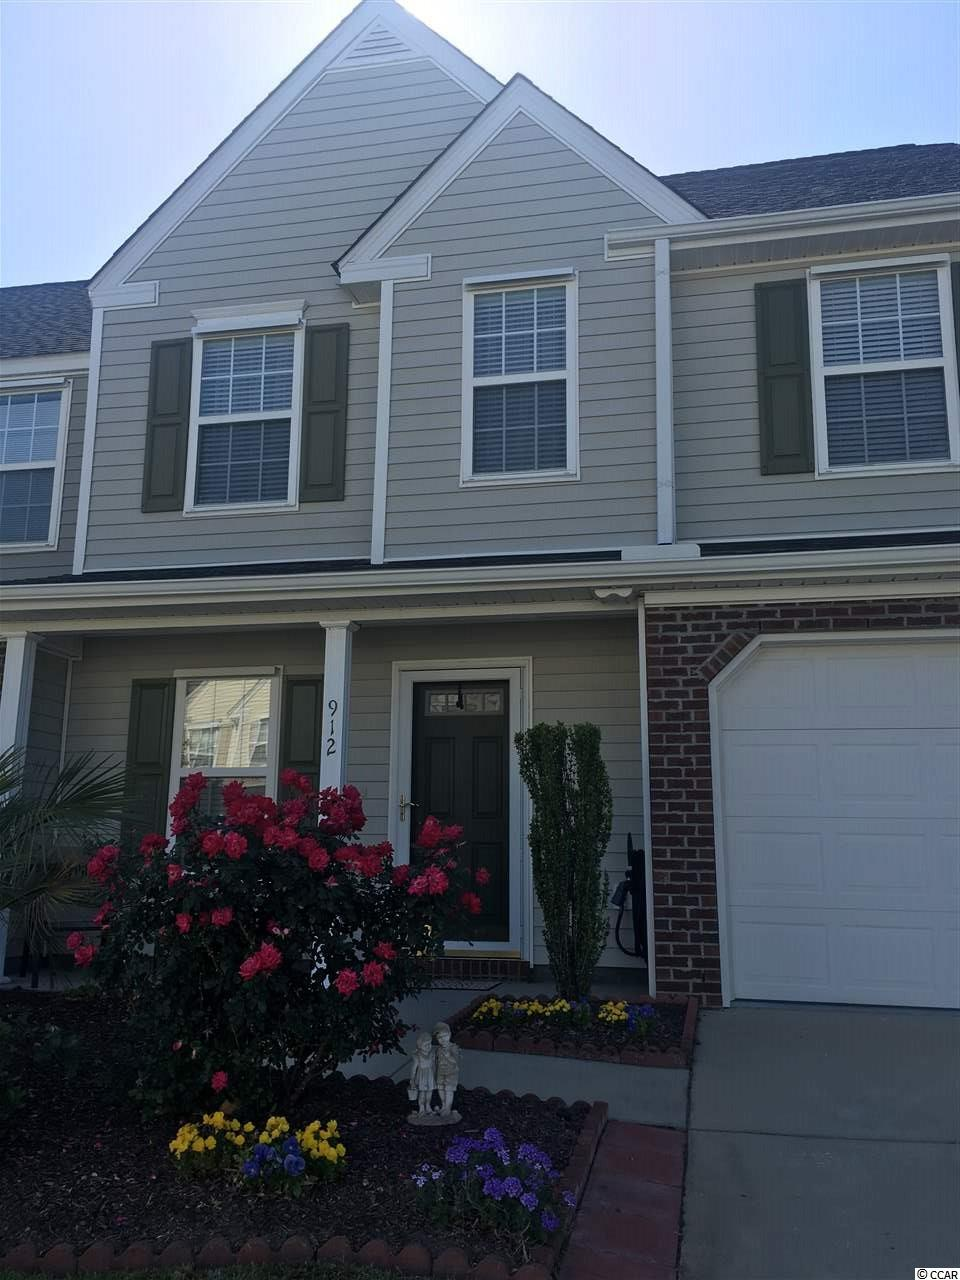 Condo MLS:1809502 WYNBROOKE TWNHM - Townhomes  912 WILLISTON LOOP Murrells Inlet SC